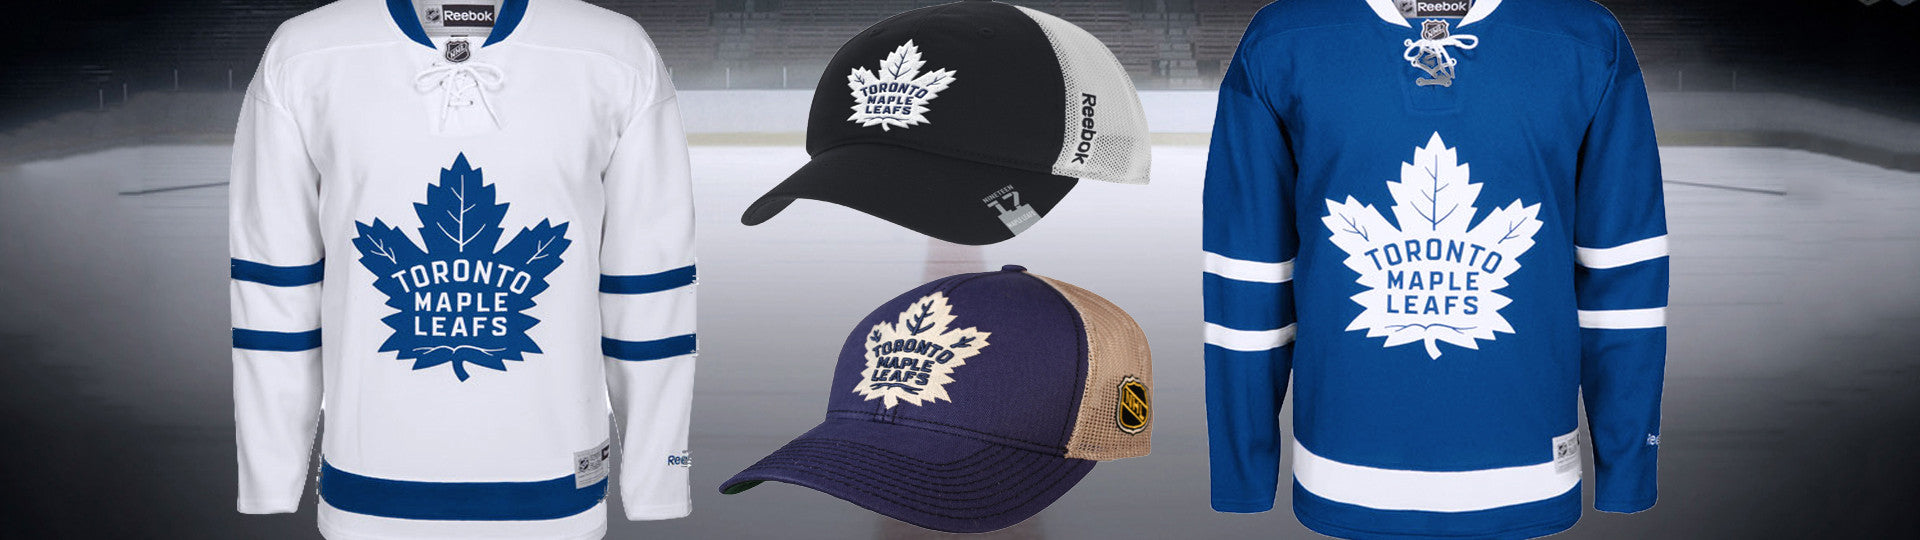 Leafs 100th Anniversary Apparel Available Now